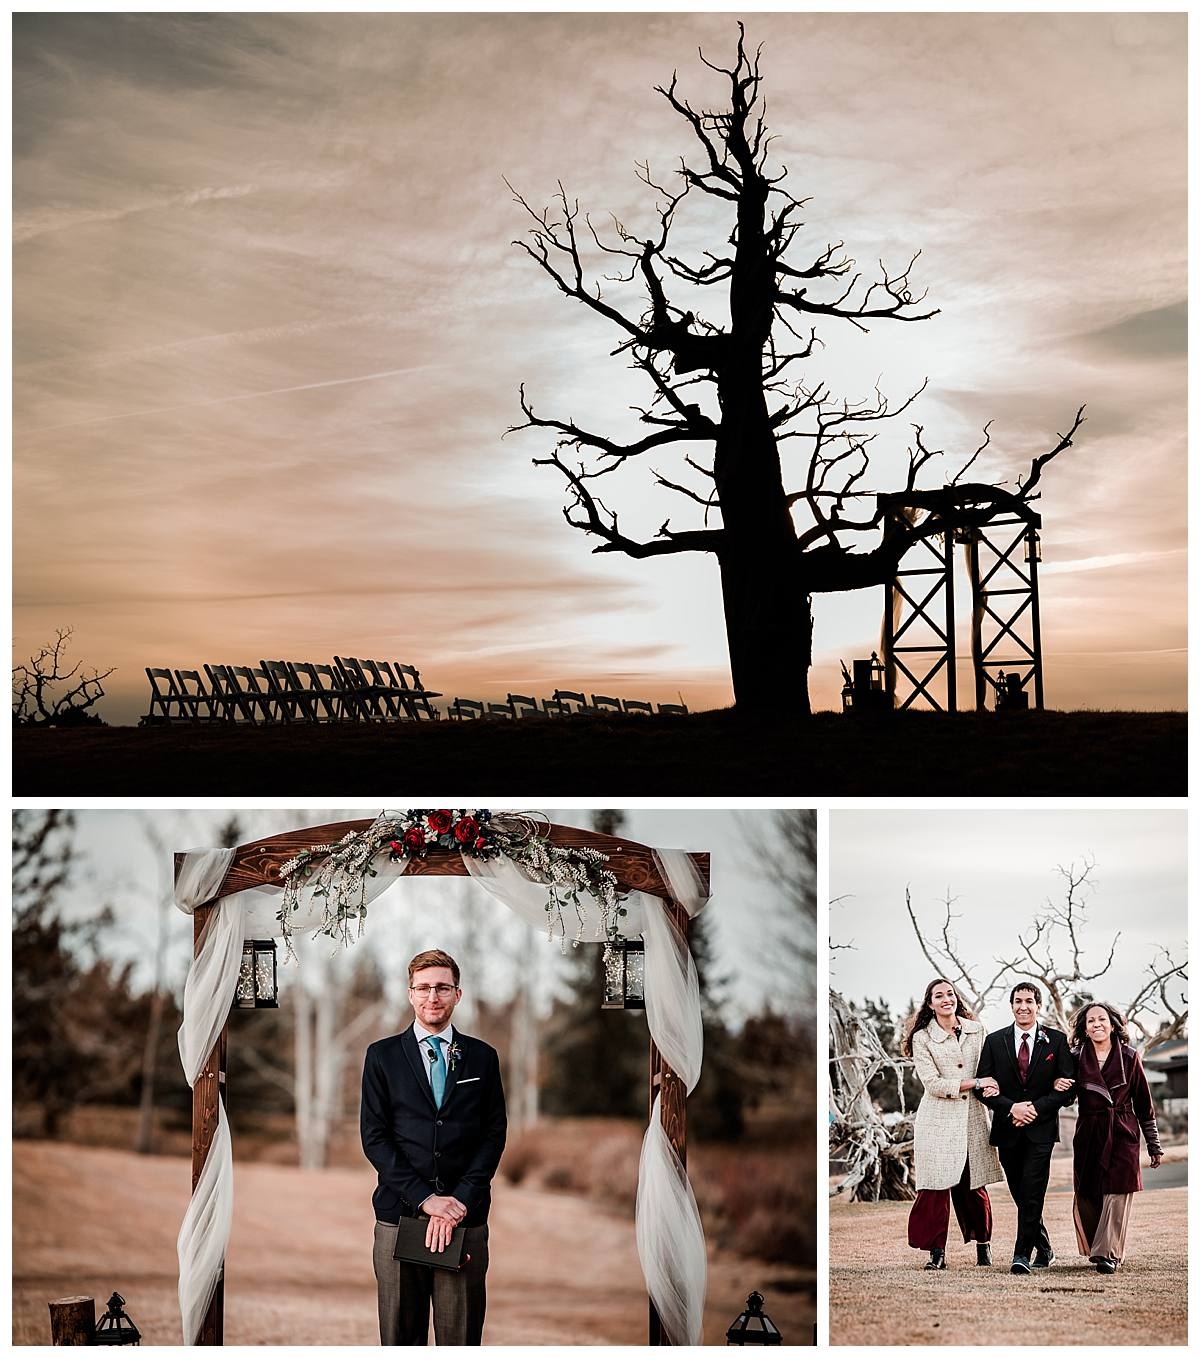 Wedding ceremony pictures outdoor at Ghost Tree Pronghorn Resort